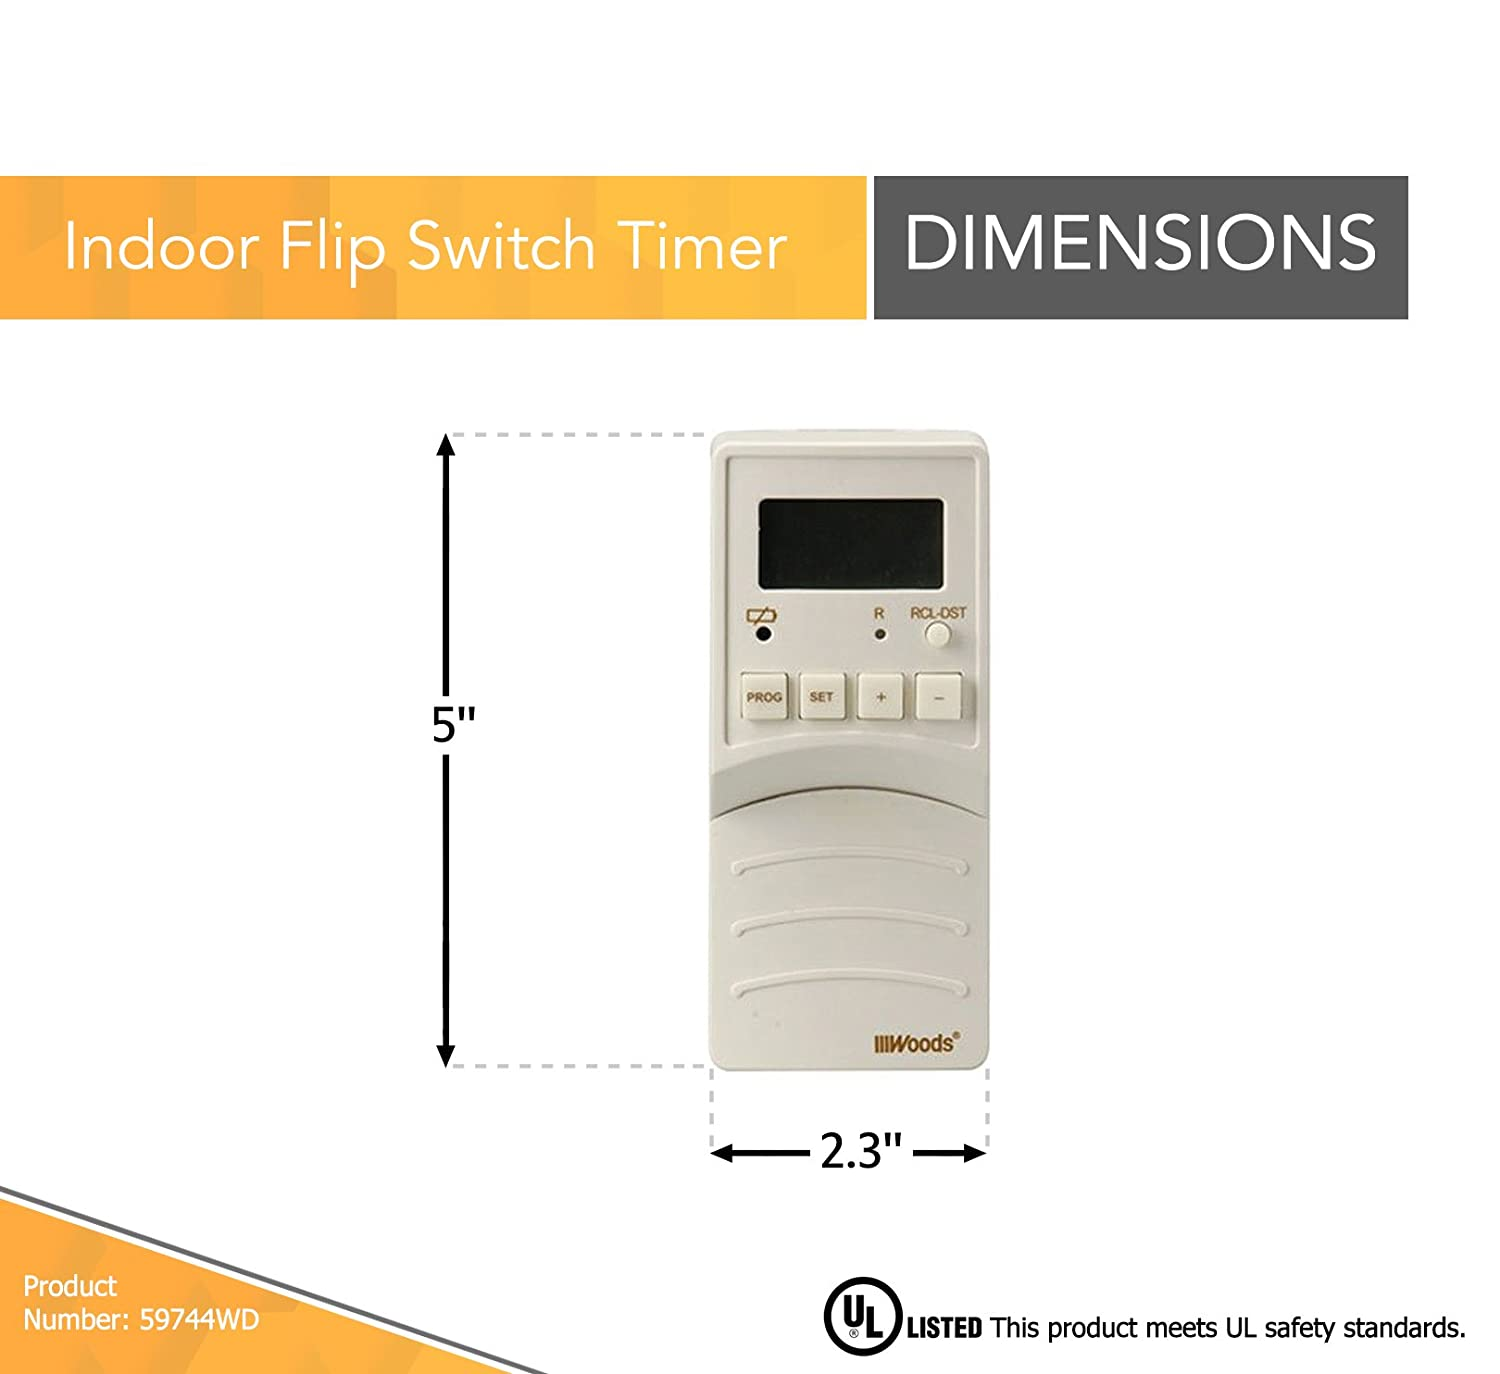 install home dfhky this here porch box a image light timer questions can description in switch enter i how leviton